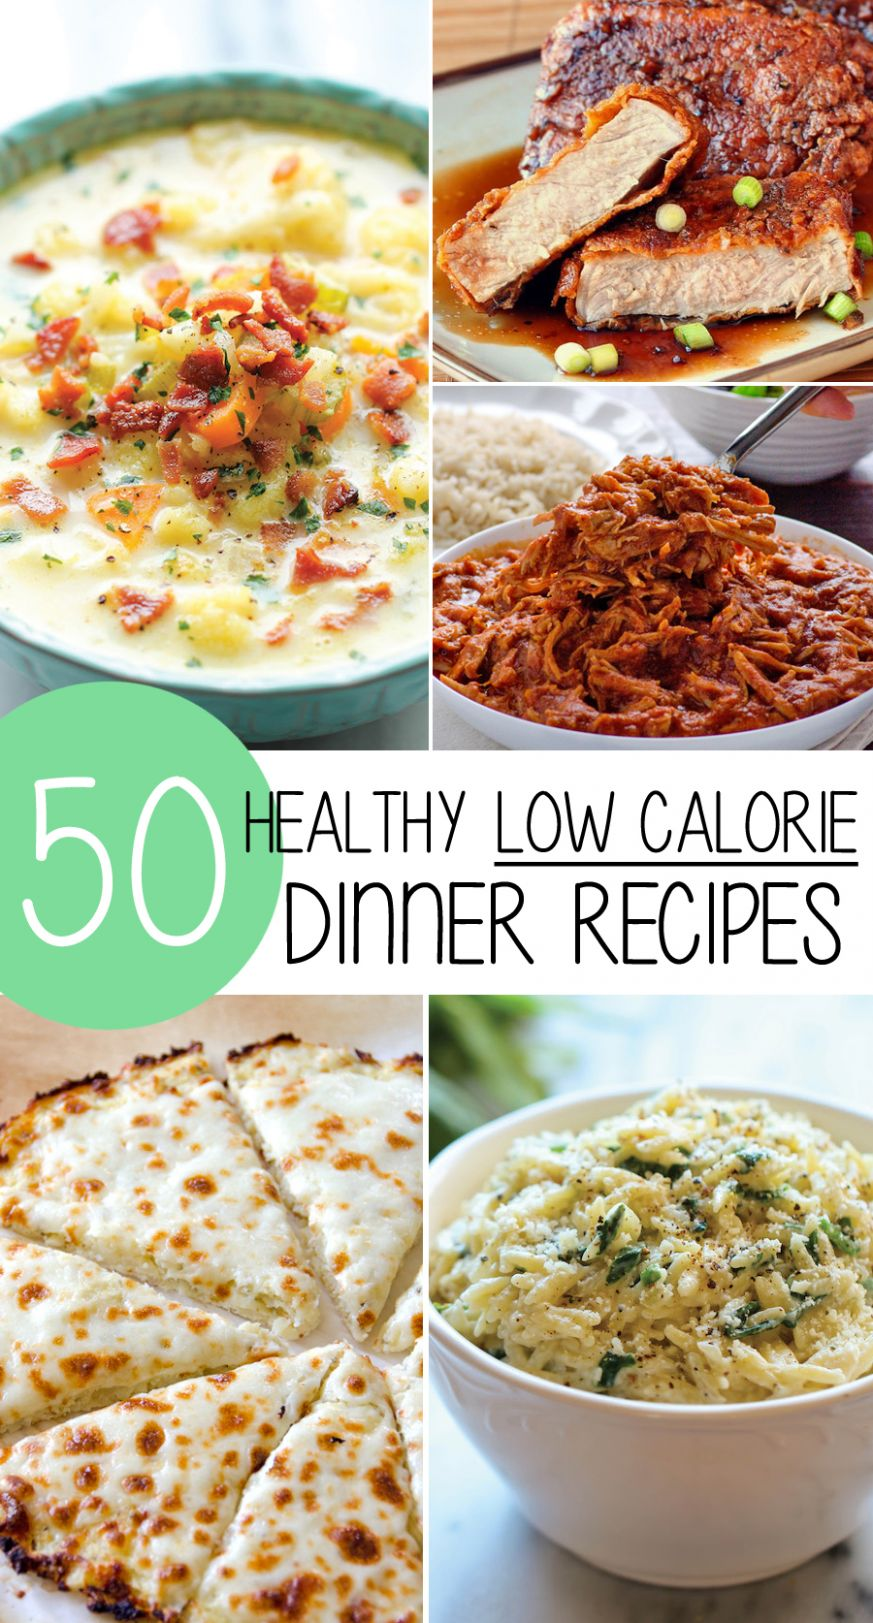 10 Healthy Low Calorie Weight Loss Dinner Recipes! – TrimmedandToned - Healthy Recipes To Lose Weight Fast